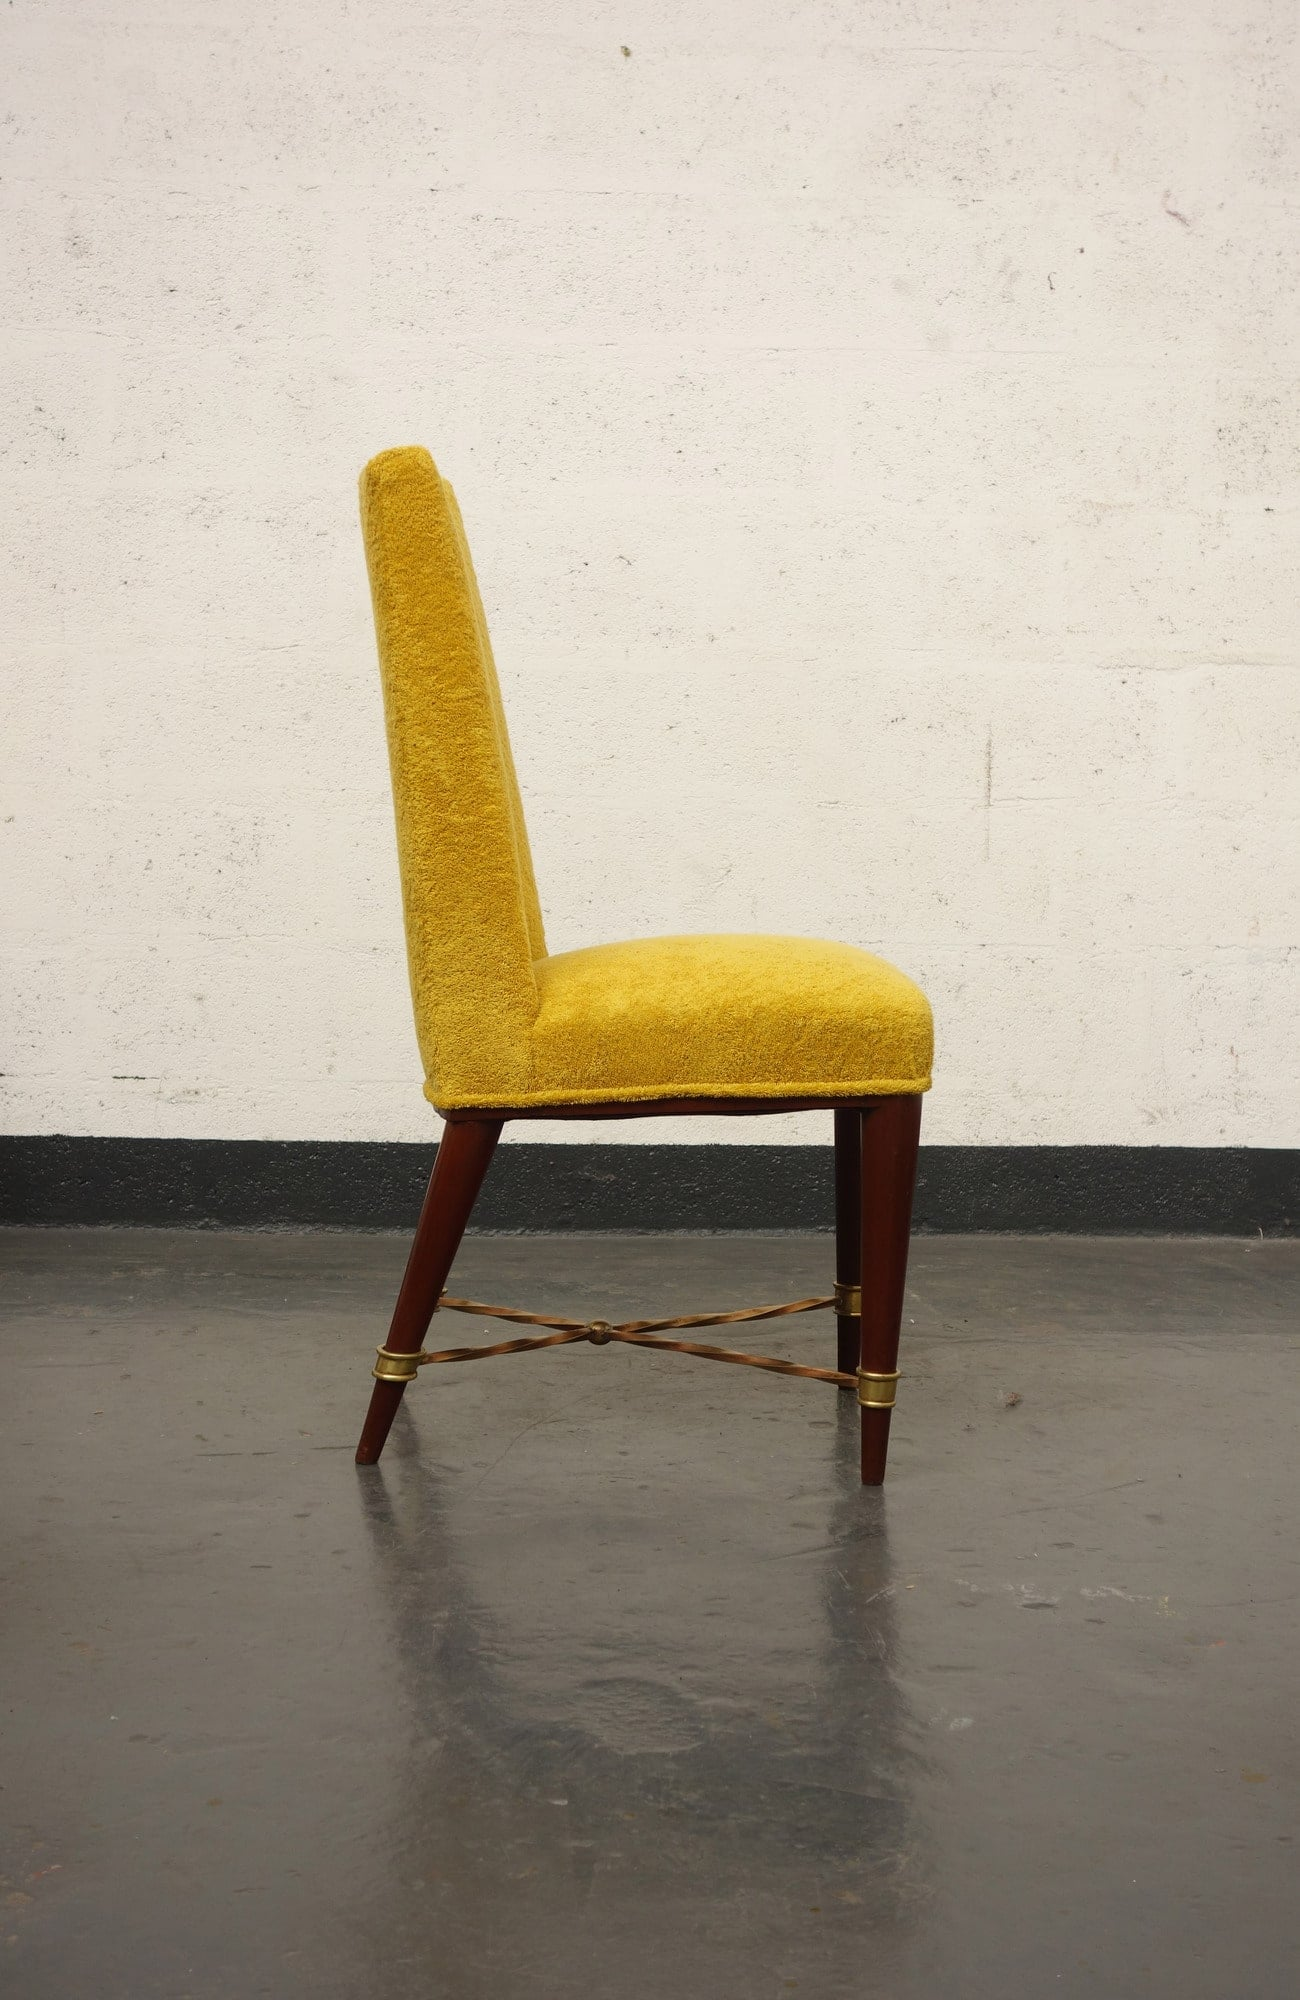 Jean Royère, Set of 8 chairs, vue 02